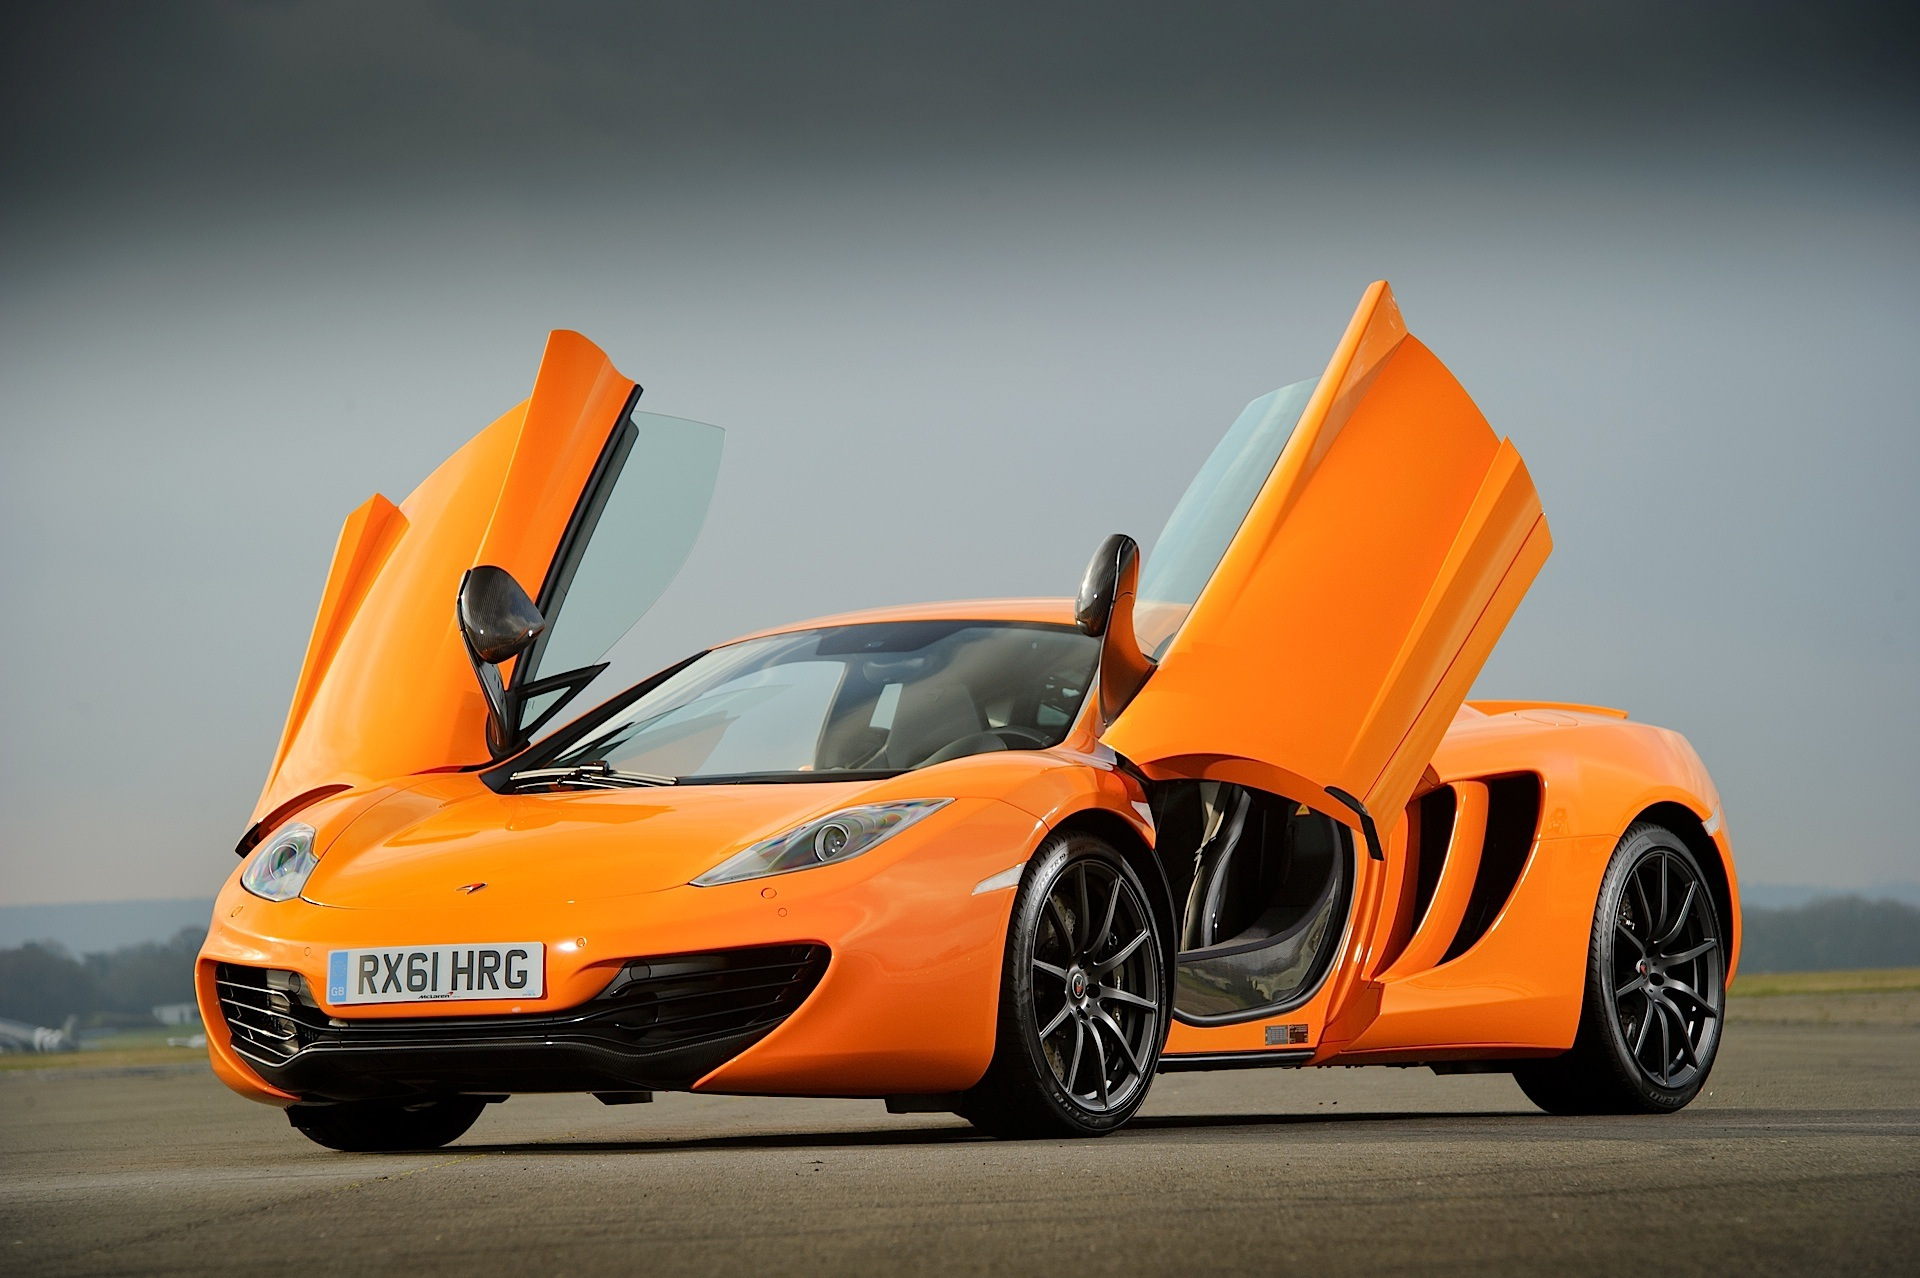 MCLAREN MP4-12C - 2011, 2012, 2013, 2014, 2015 - autoevolution